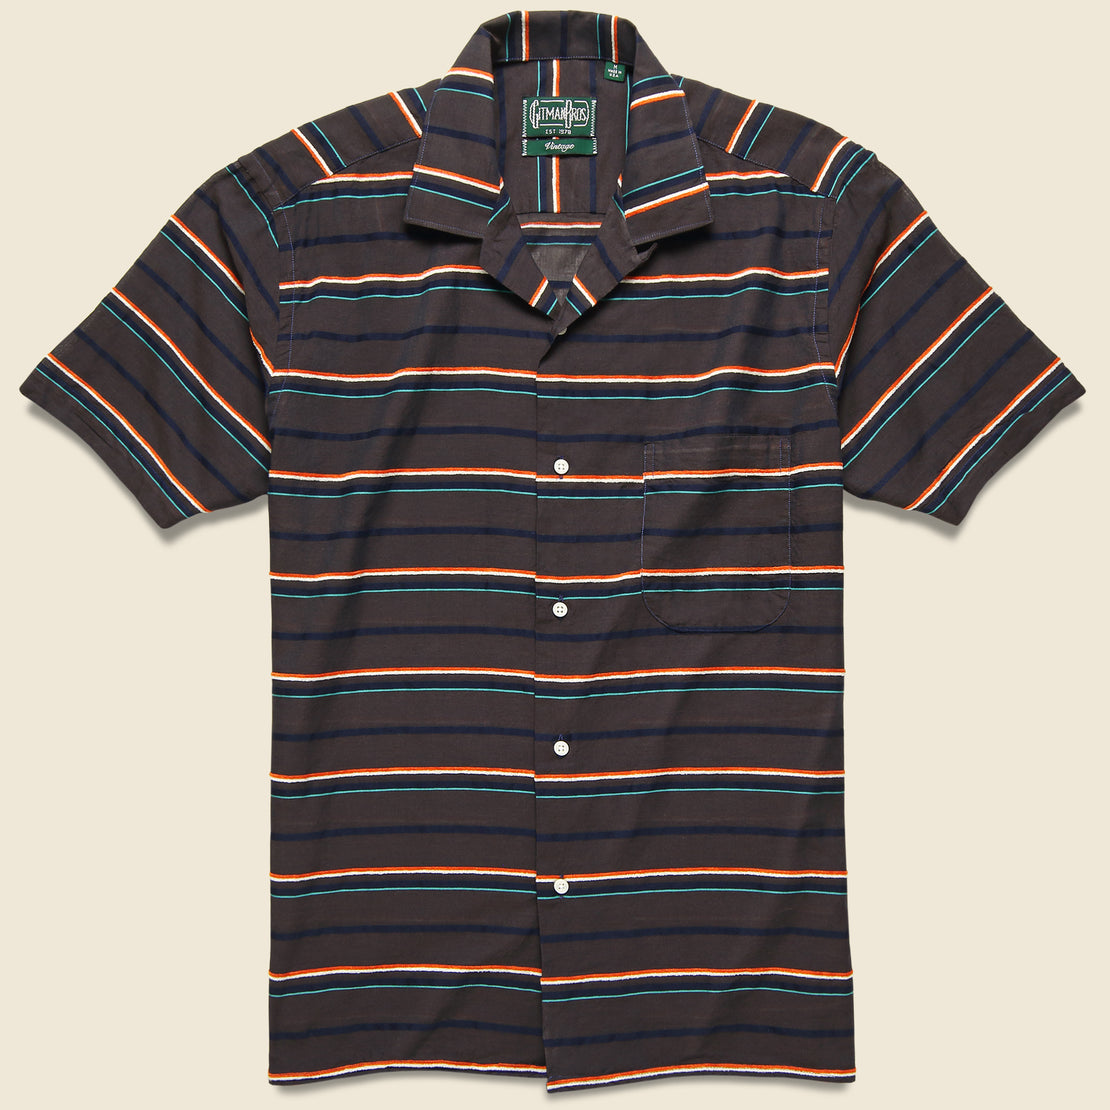 Gitman Vintage Terry-Cloth Border Barre Camp Shirt - Brown